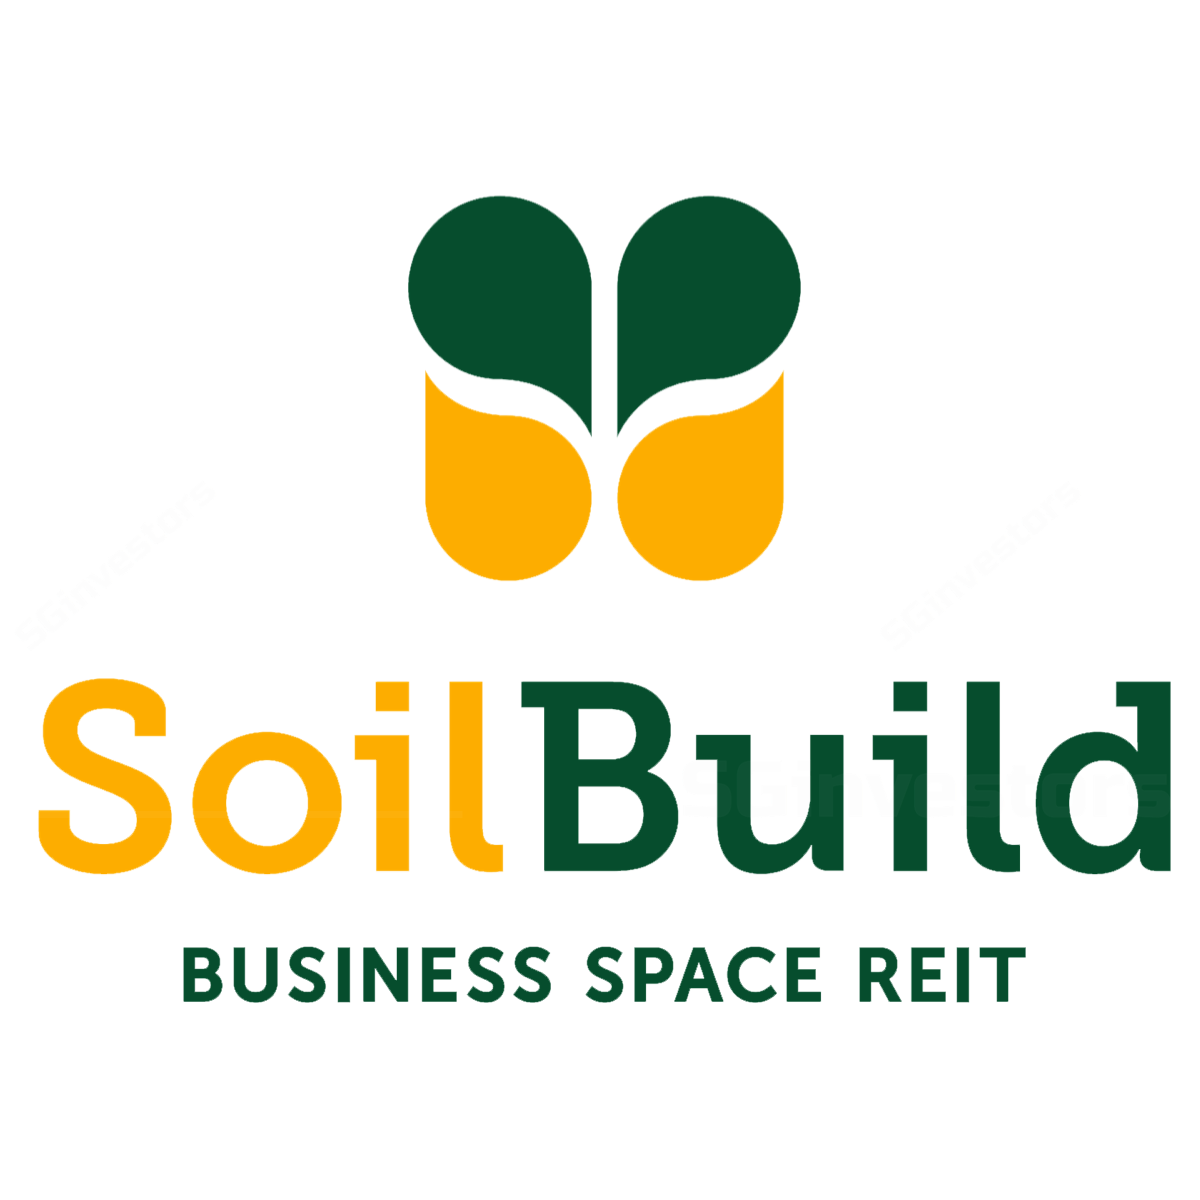 Soilbuild Business Space Reit - DBS Vickers 2017-07-18: Still Very Attractive Yield